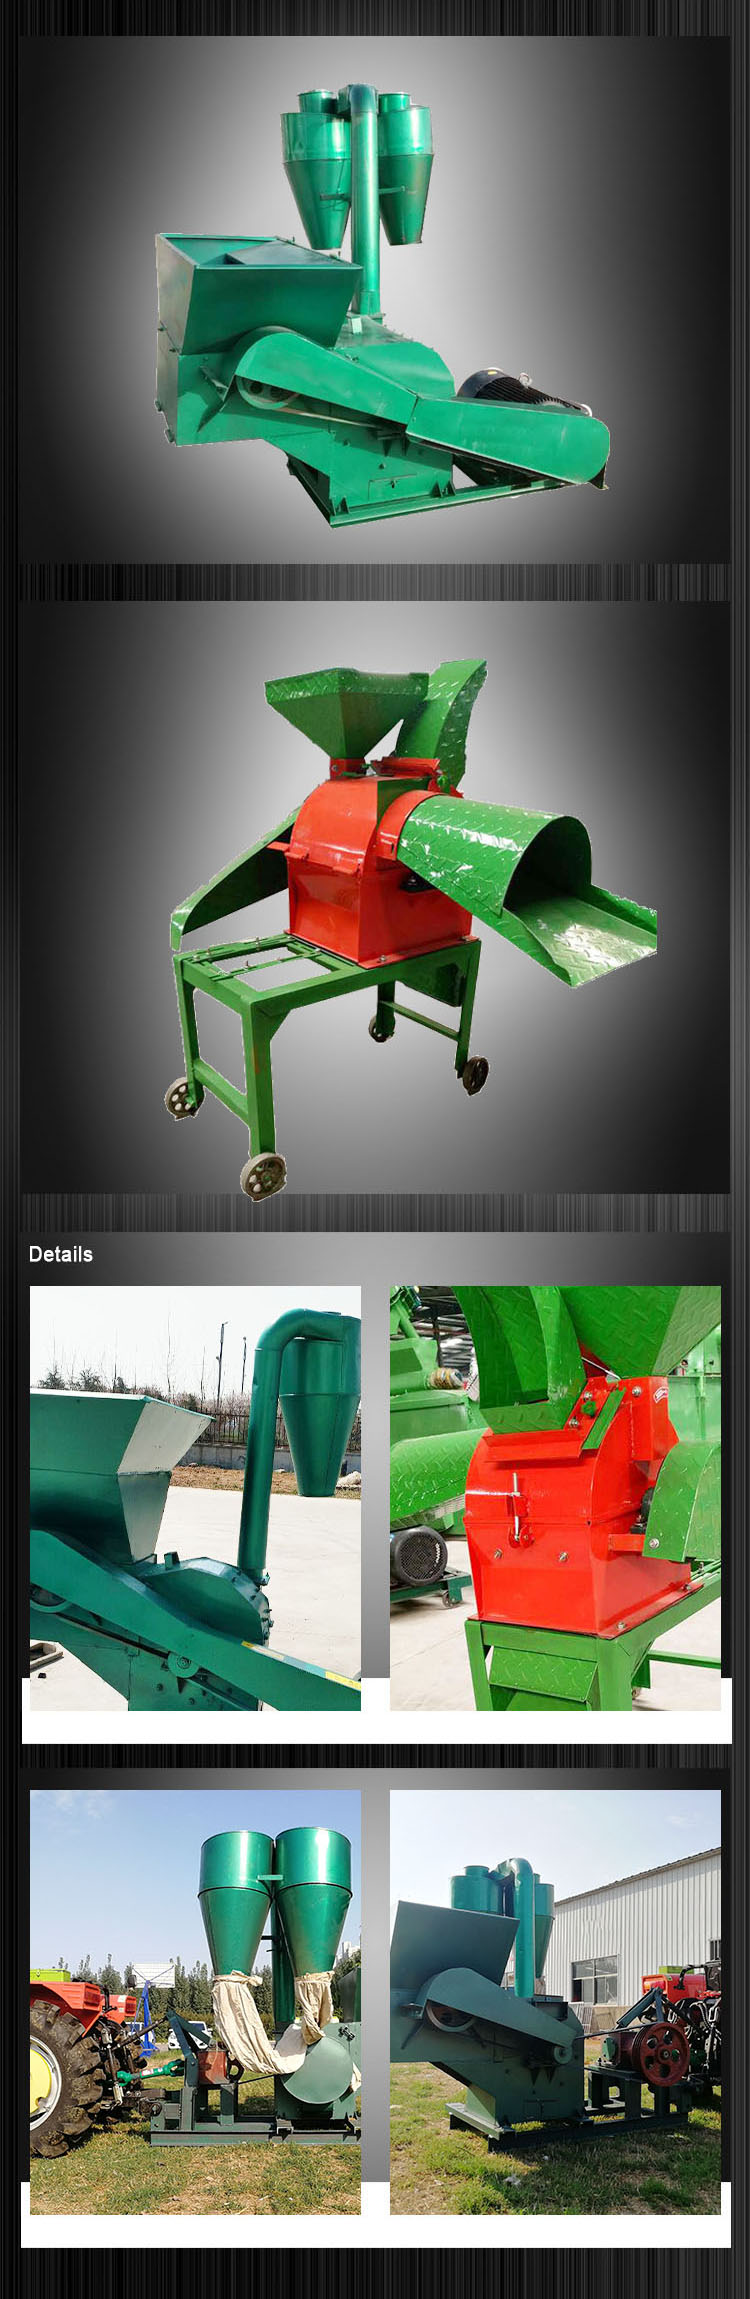 Large Output Automatic Electric Feed Mill Grinder